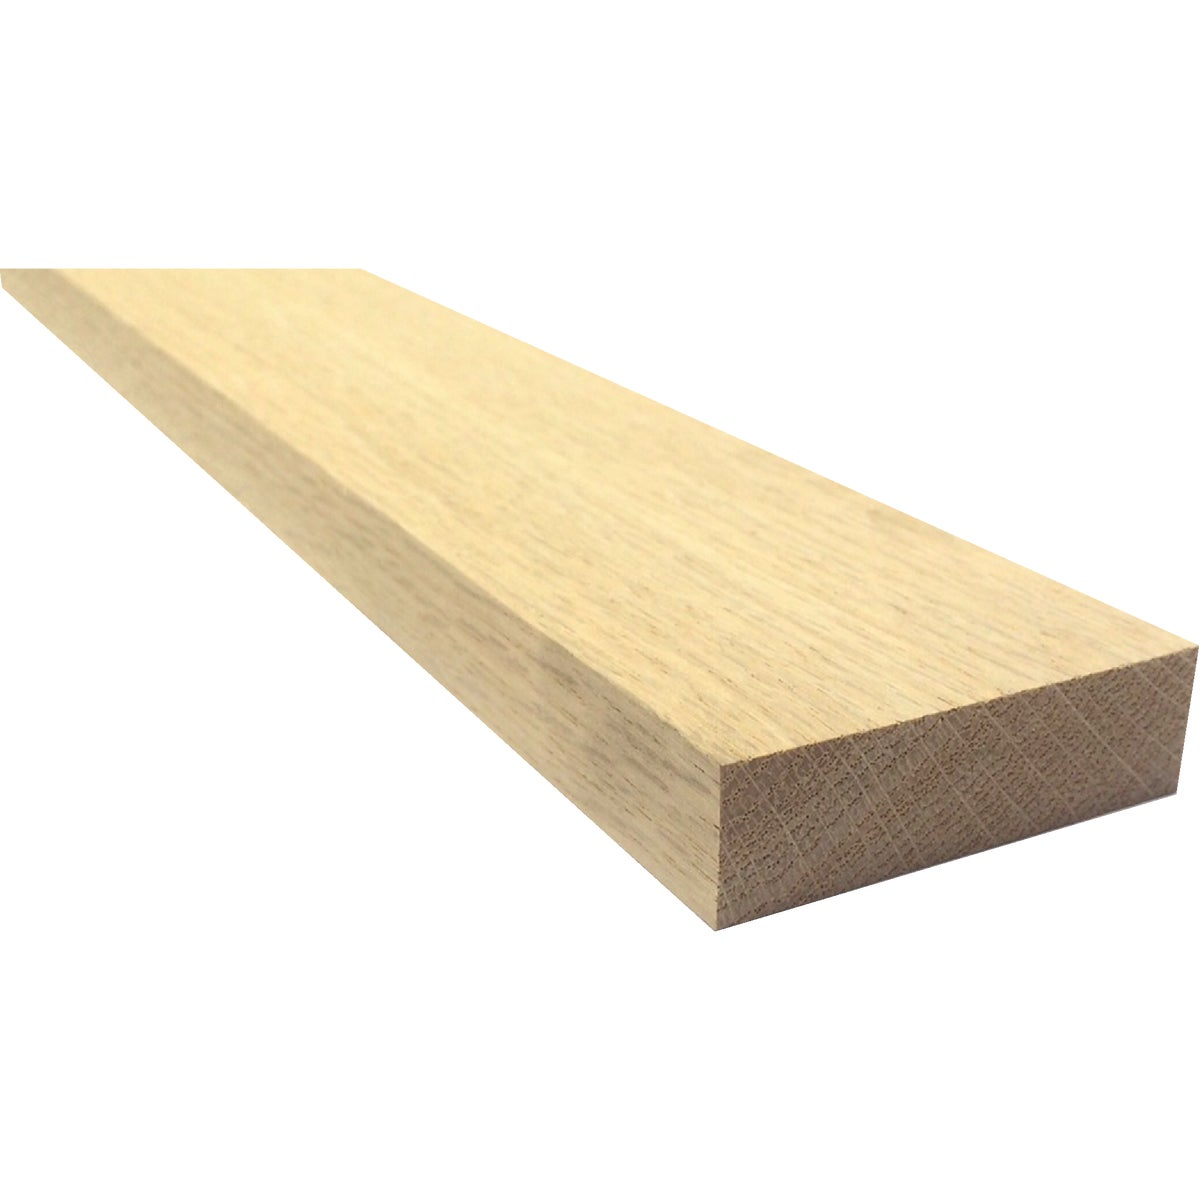 "1X3""X3' OAK BOARD - PB19528 by Waddell Mfg Company"